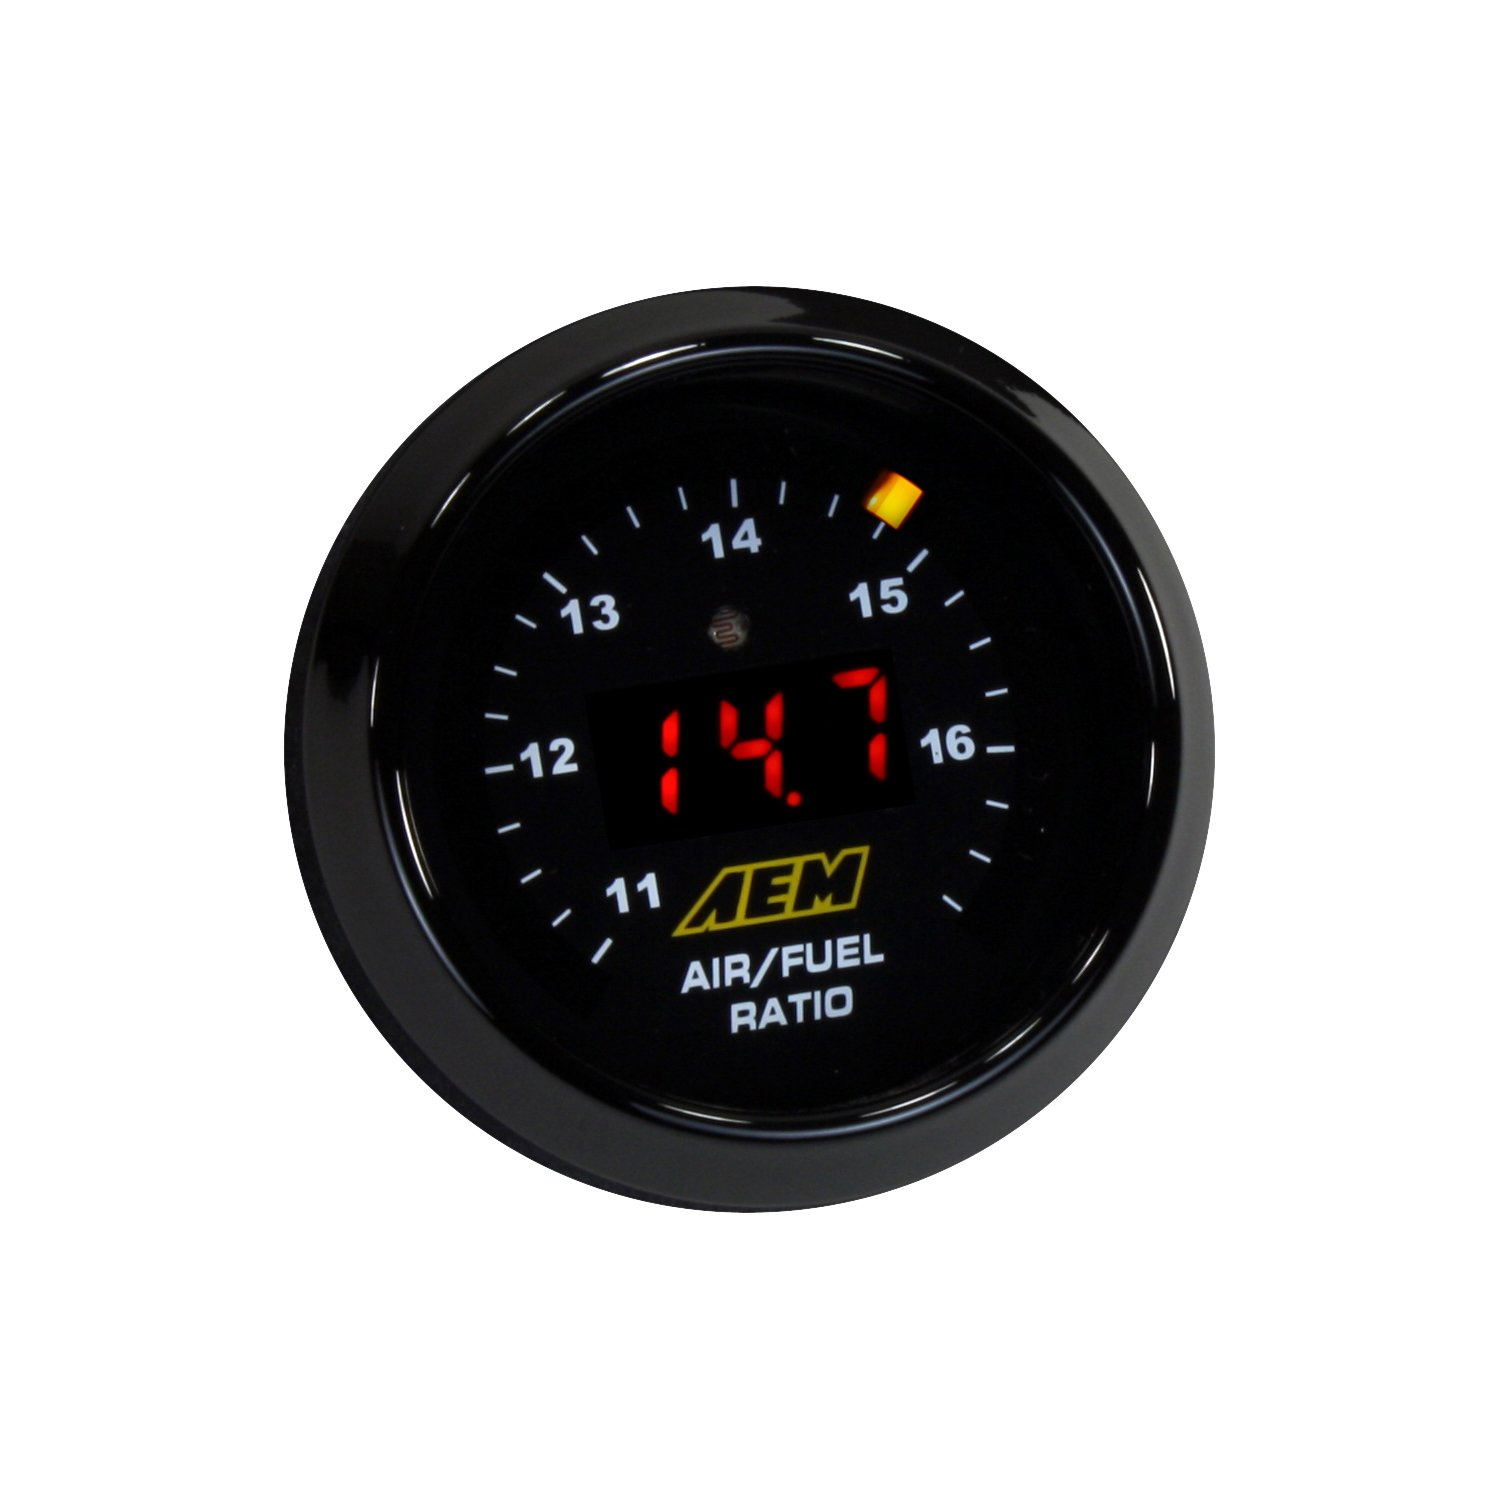 Aem 30 4110 Uego Air Fuel Ratio Gauge Automotive Auto Meter Motorcycle Tach Pro Wiring